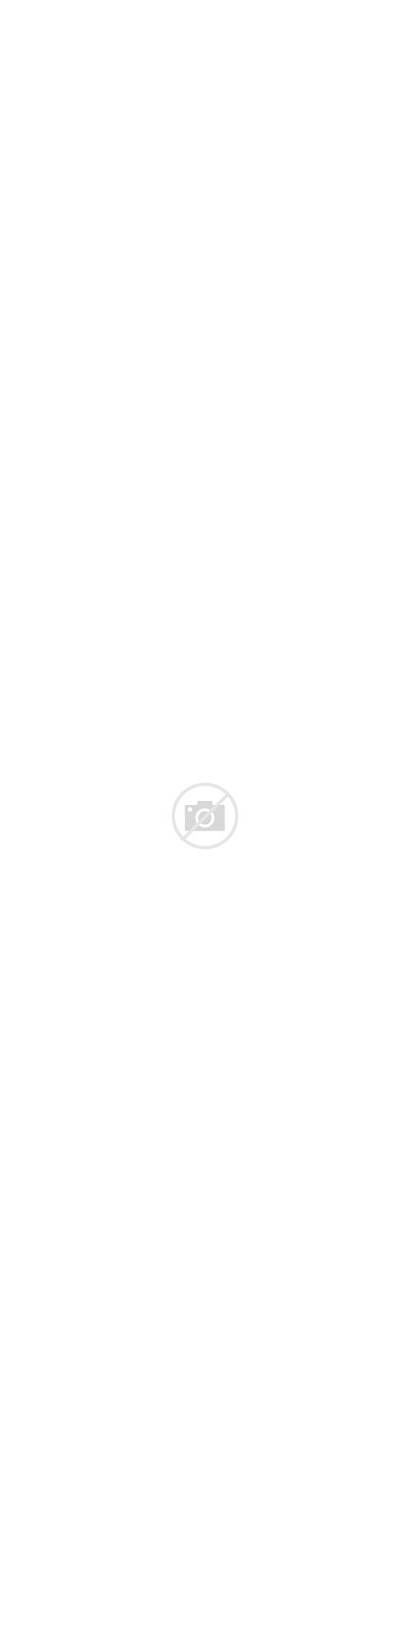 Columns Square Fluted Fiberglass Mall Architectural